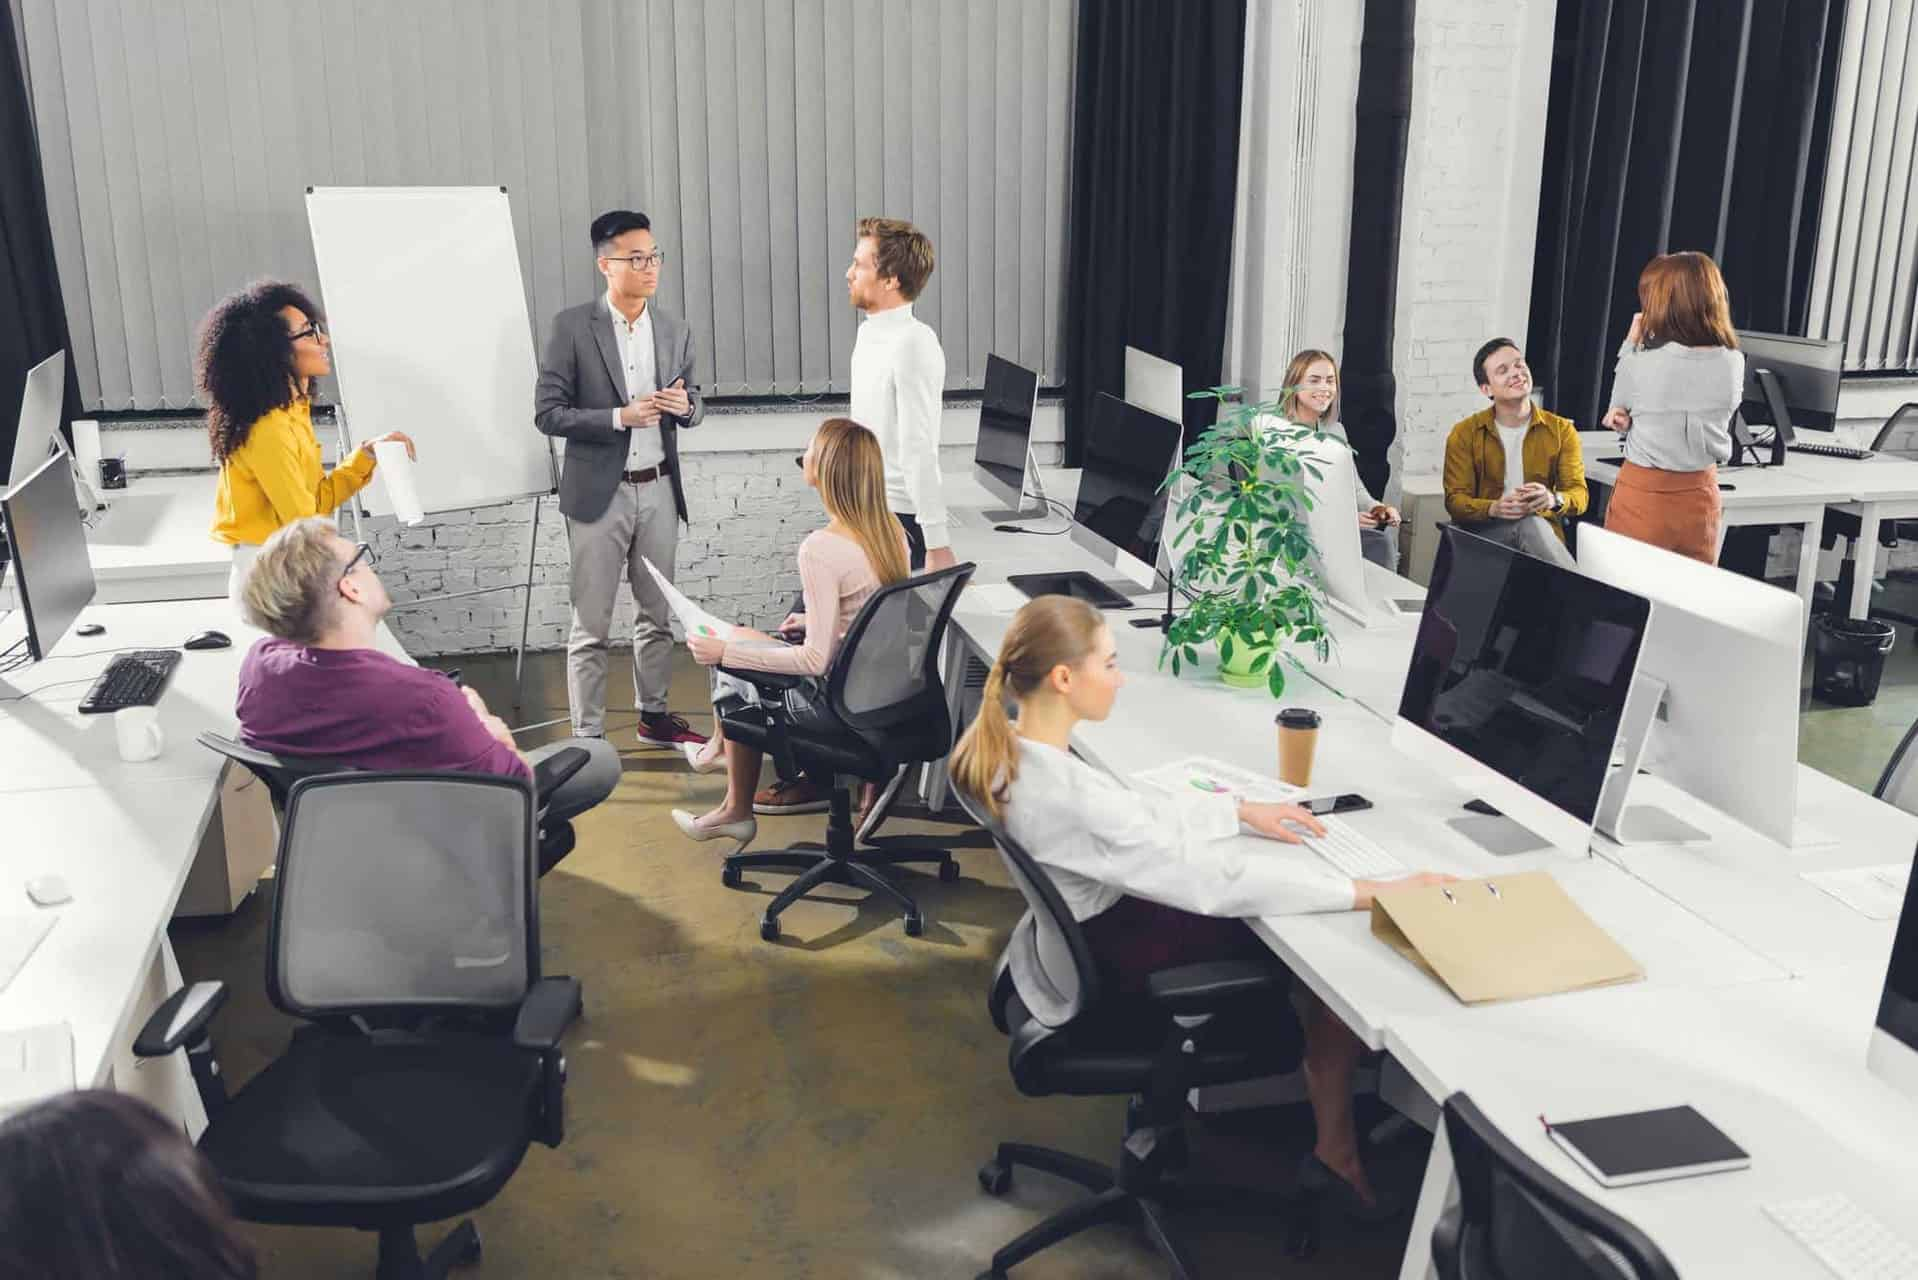 professional young multiracial businesspeople working together in open space office